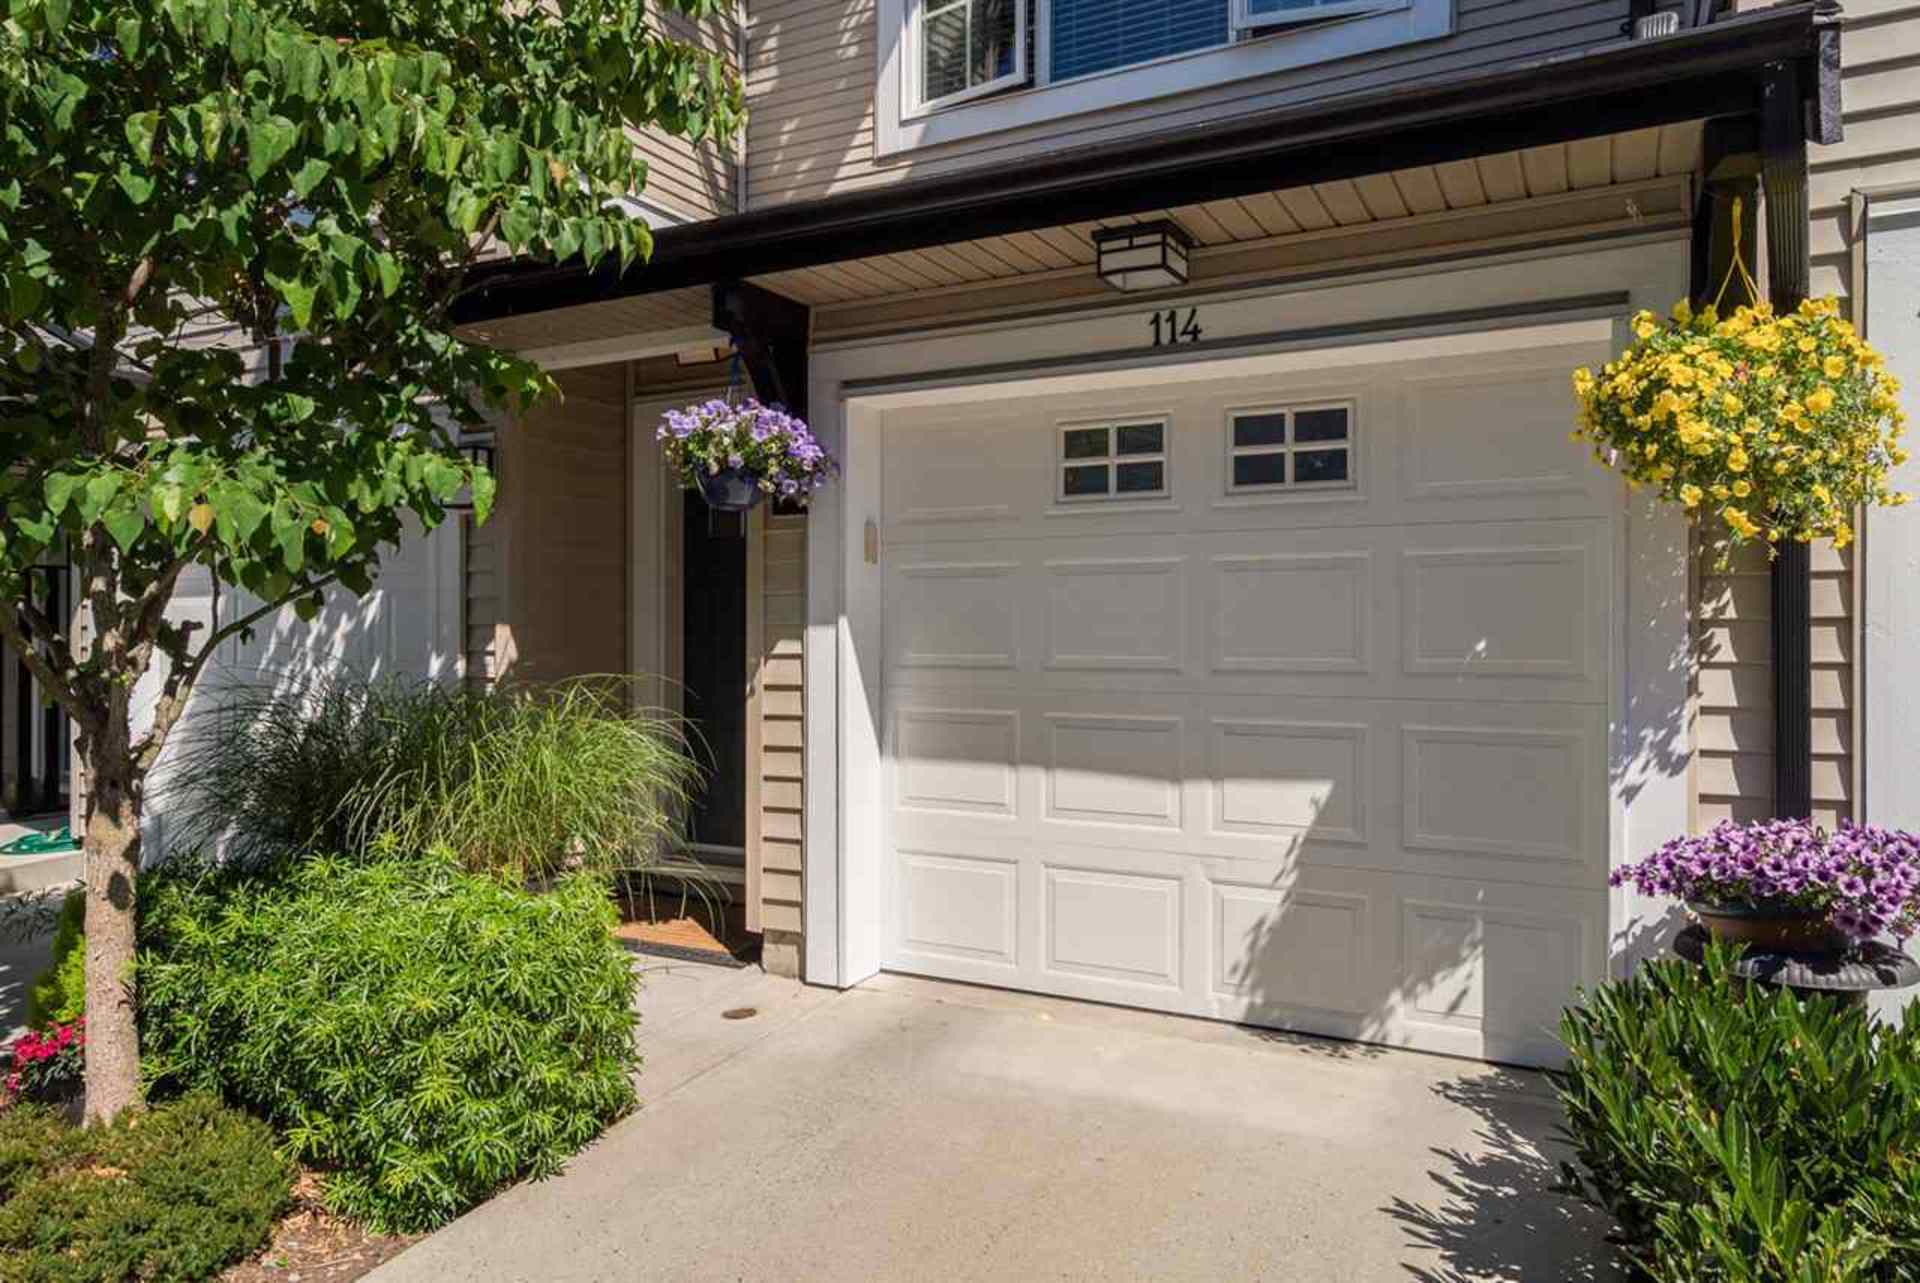 114 2450 161a street grandview surrey south surrey white rock 2450 161a street grandview surrey south surrey white rubansaba